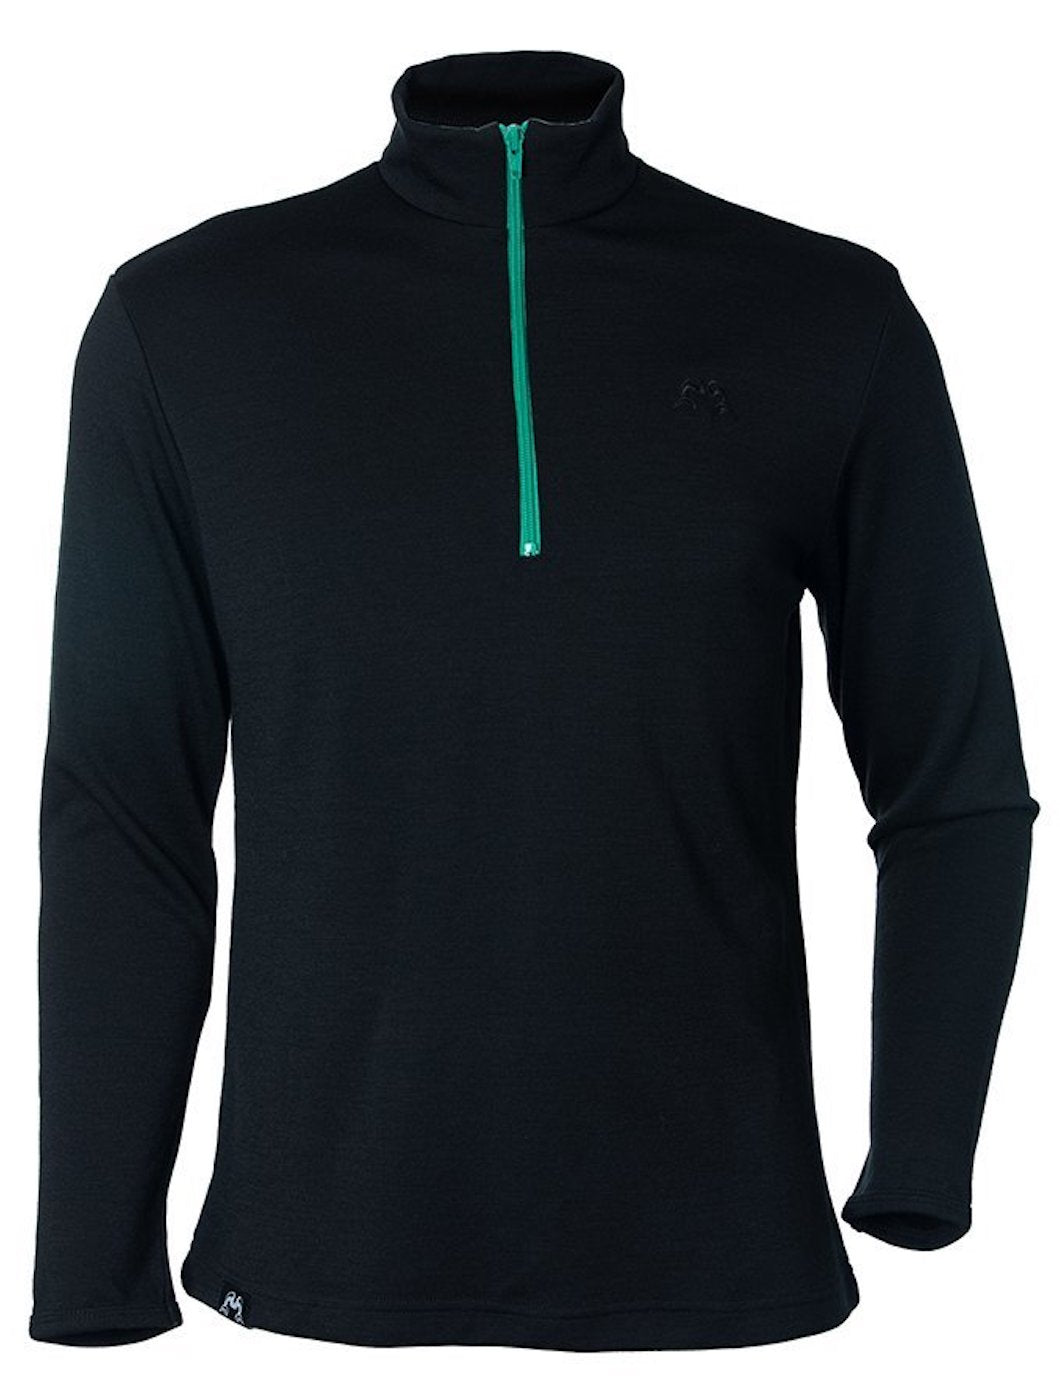 True Fleece Men's merino wool  300 Coast quarter zip jersey